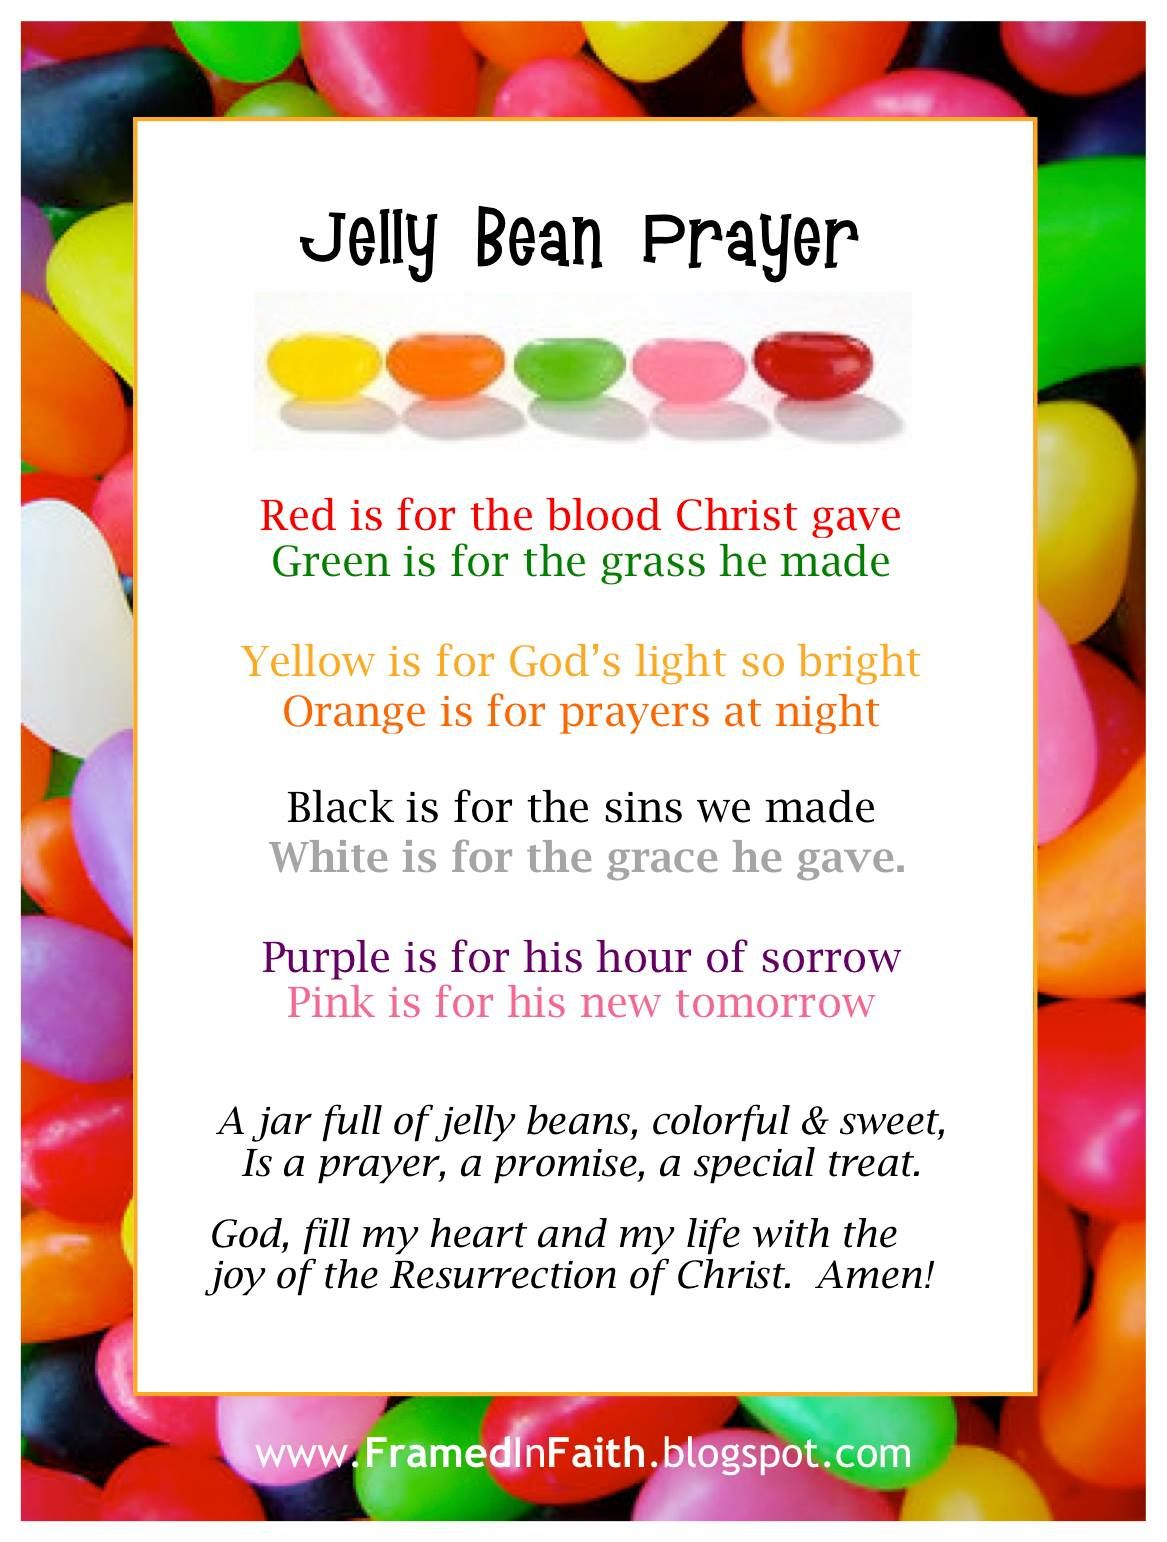 The Jelly Bean Prayer Great Object Lesson